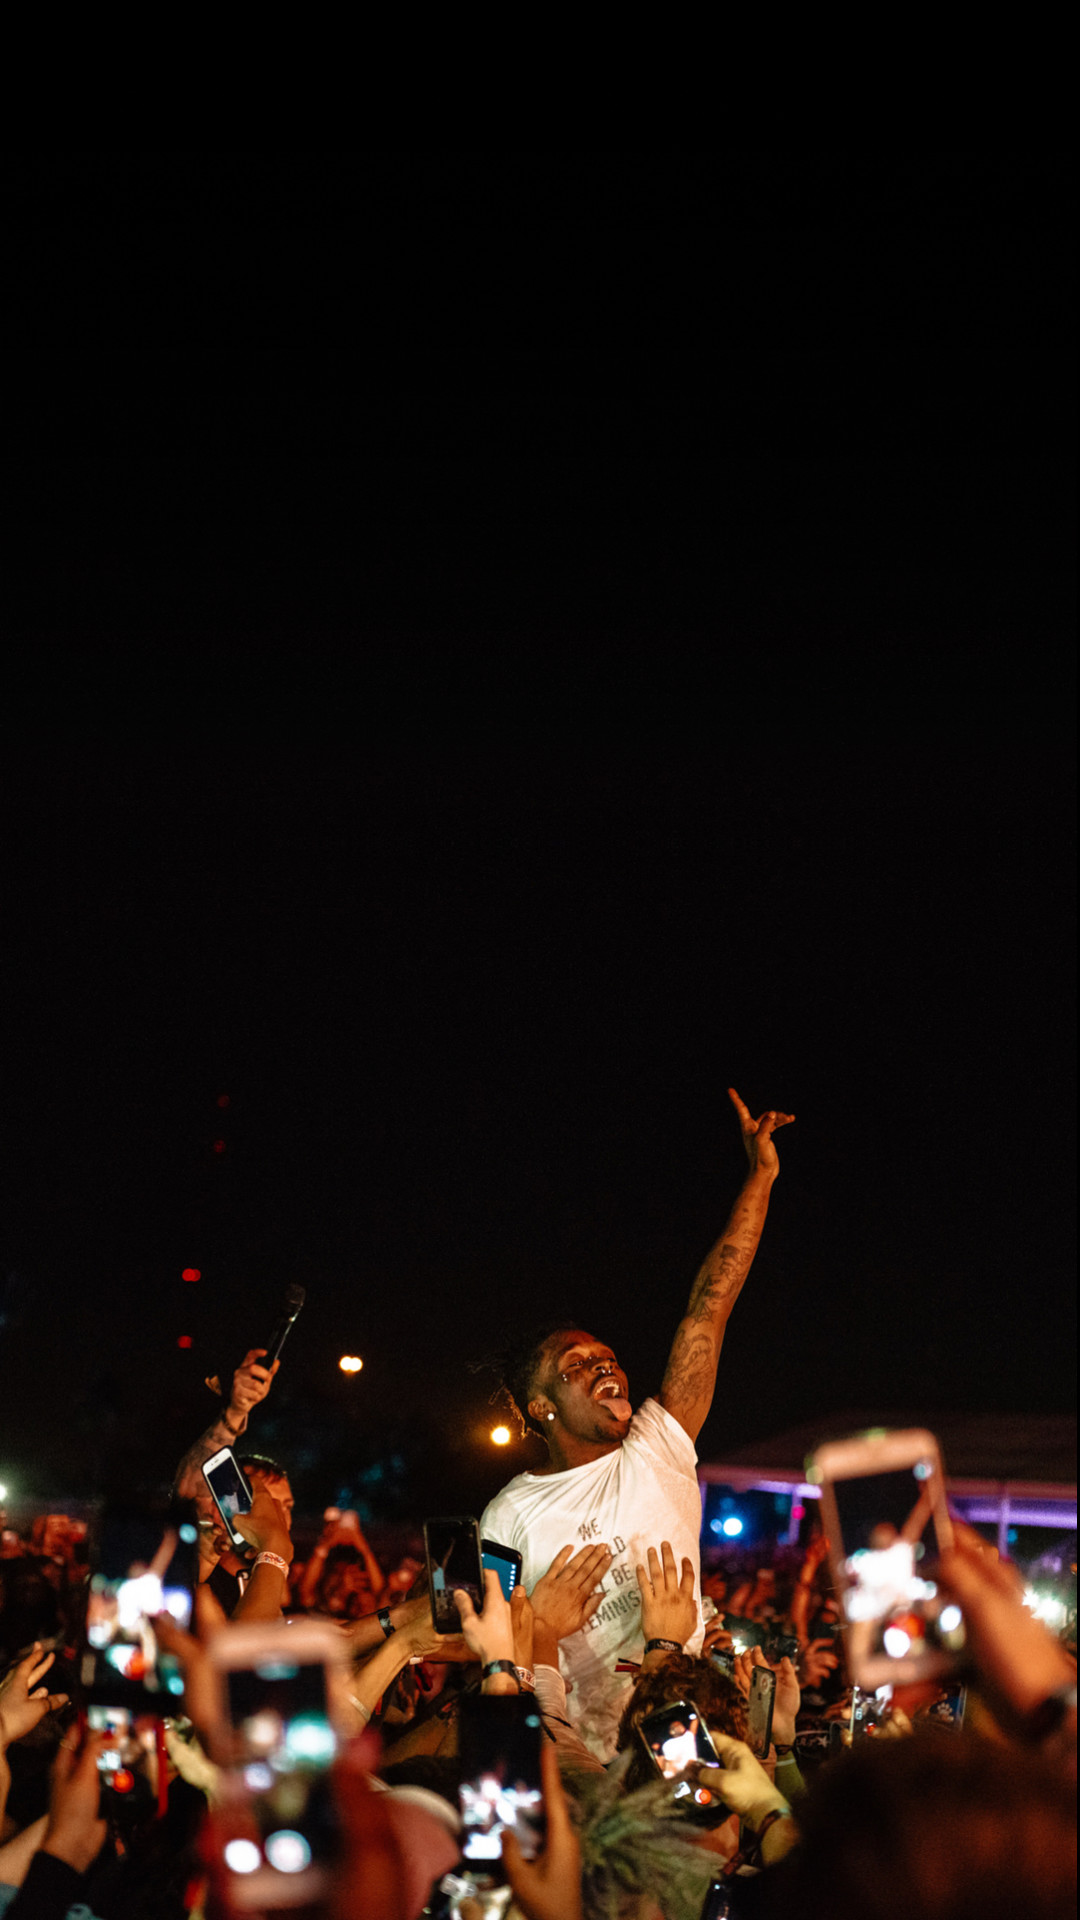 Lil Uzi Vert Wallpapers 76 Background Pictures Guys lil uzi is pogging!!! lil uzi vert wallpapers 76 background pictures